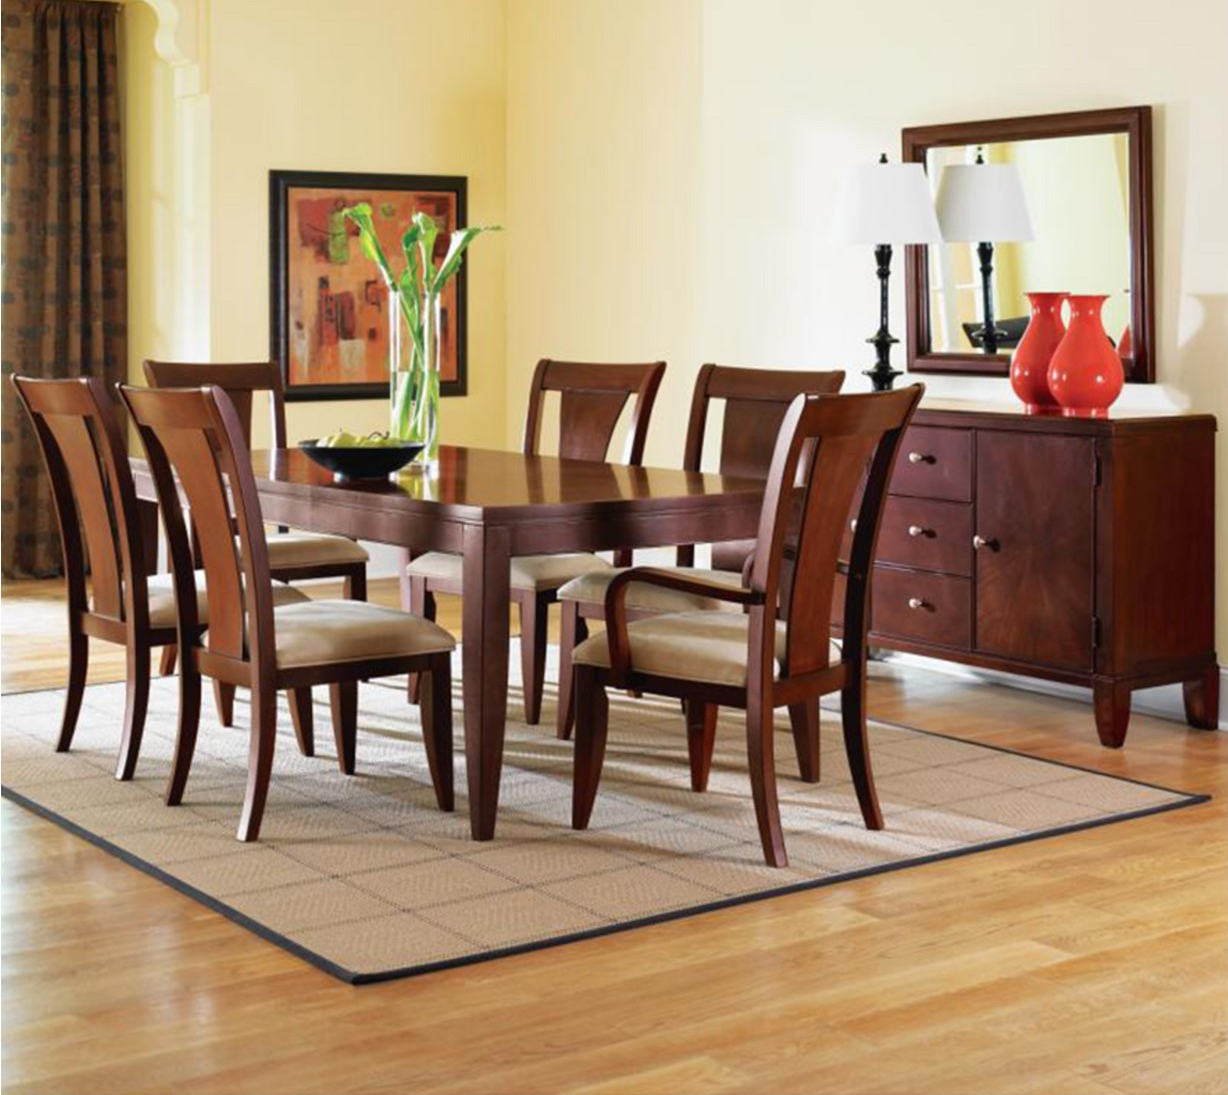 Bon Metropolitan 7 Pc. Contemporary Dining Set, (Dining Table U0026 6 Chairs) Only  $899! (Was $1,700!)